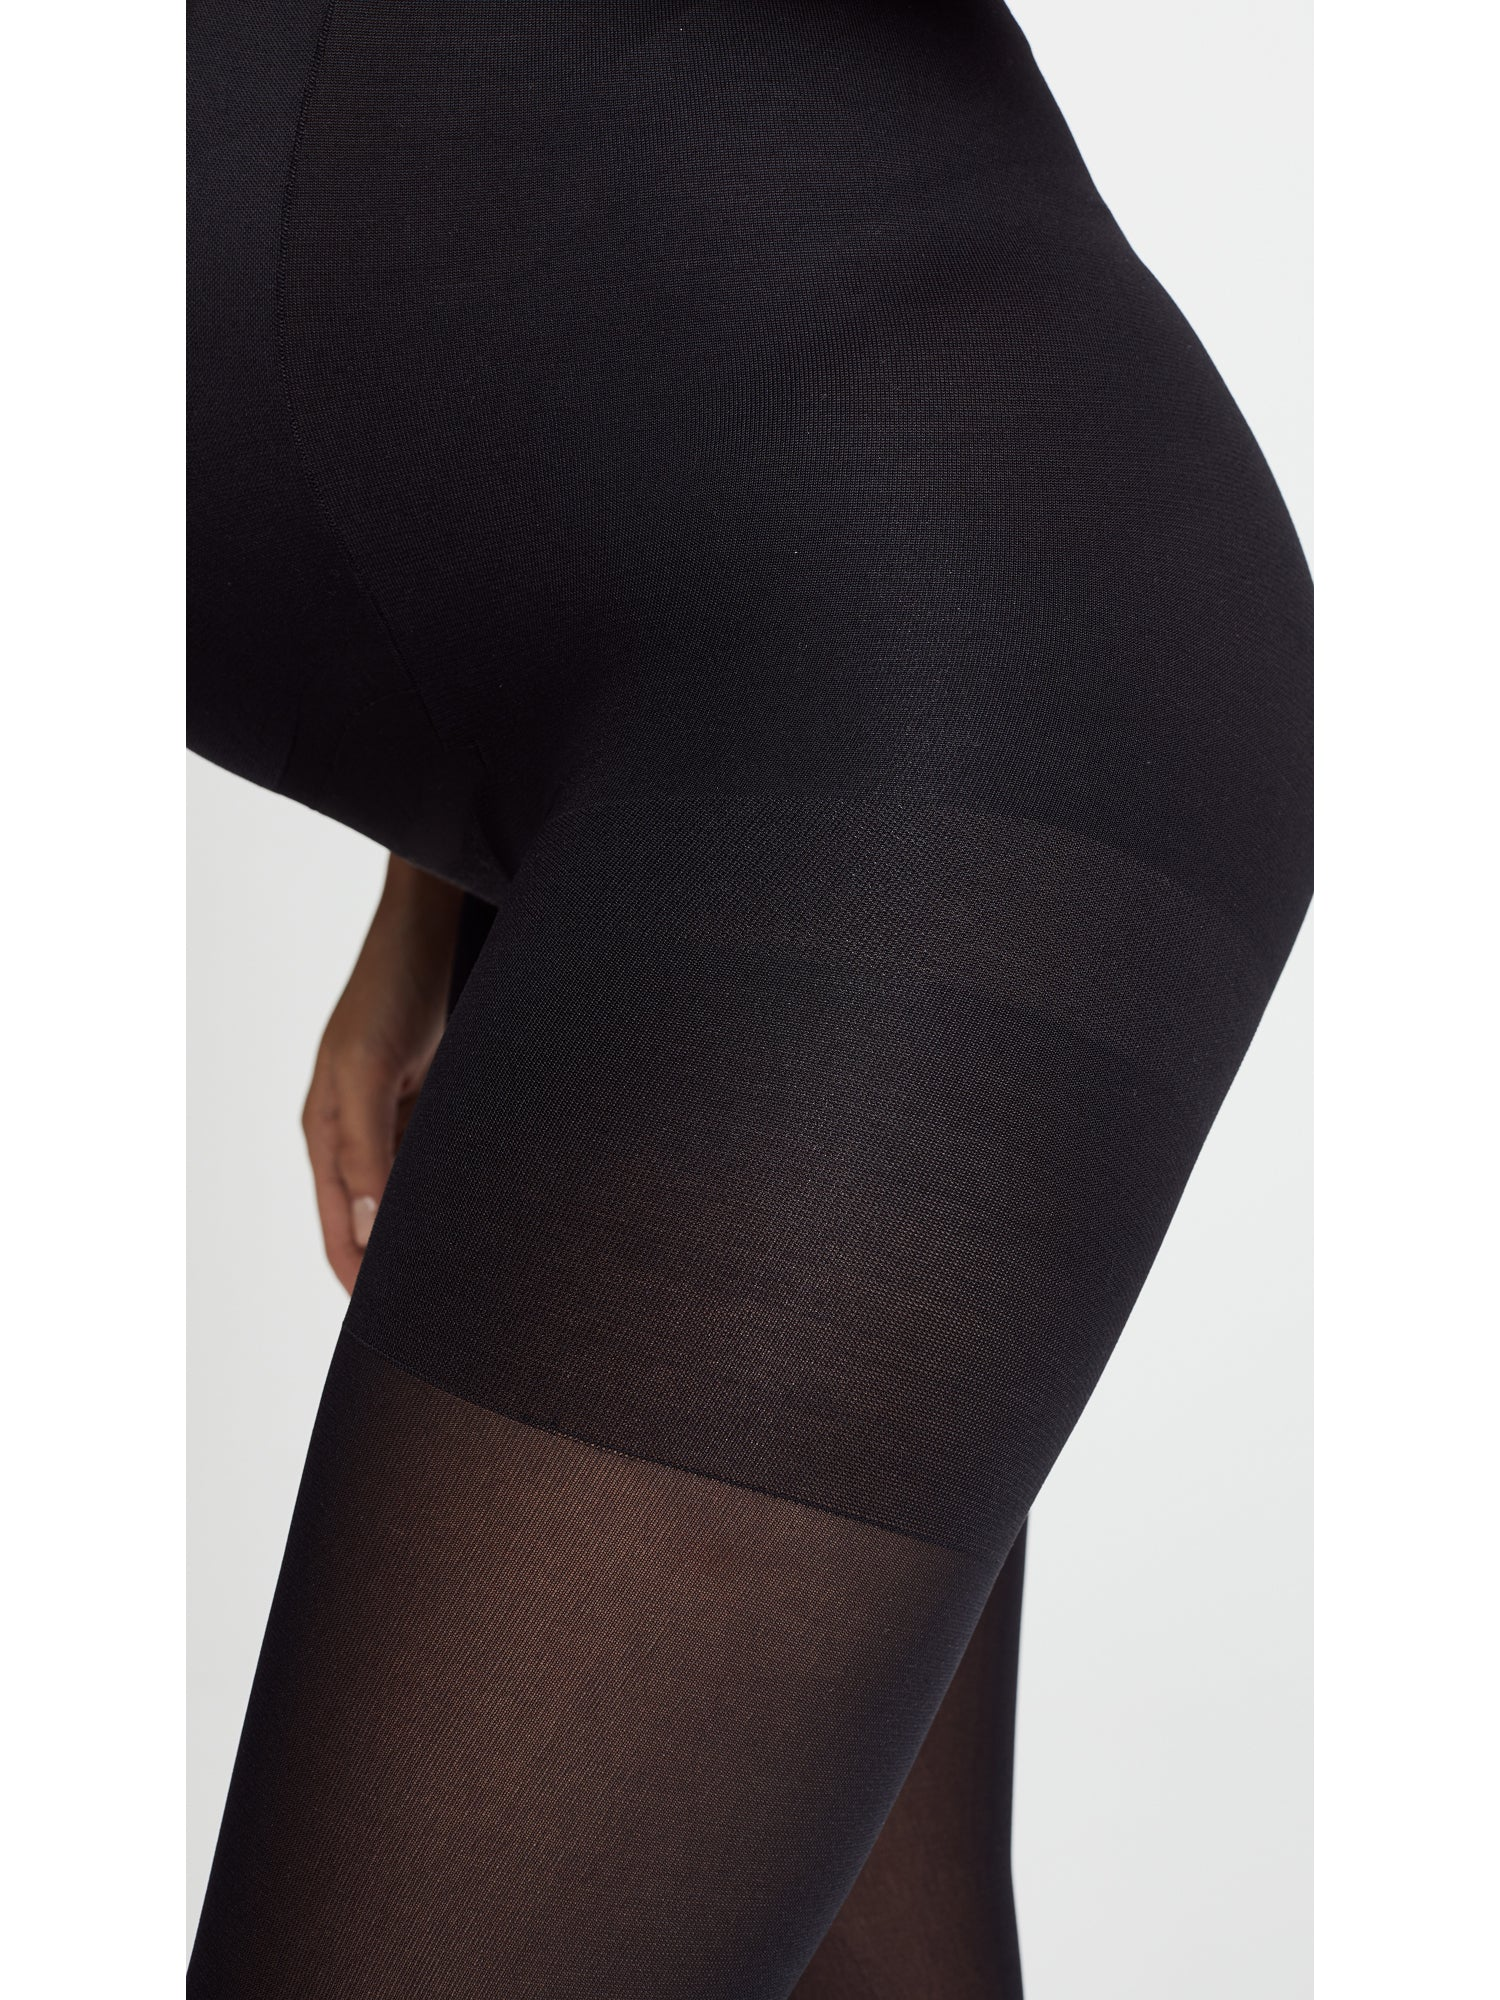 Spanx Mama Shaper Maternity Tights - Very Black | TILDEN